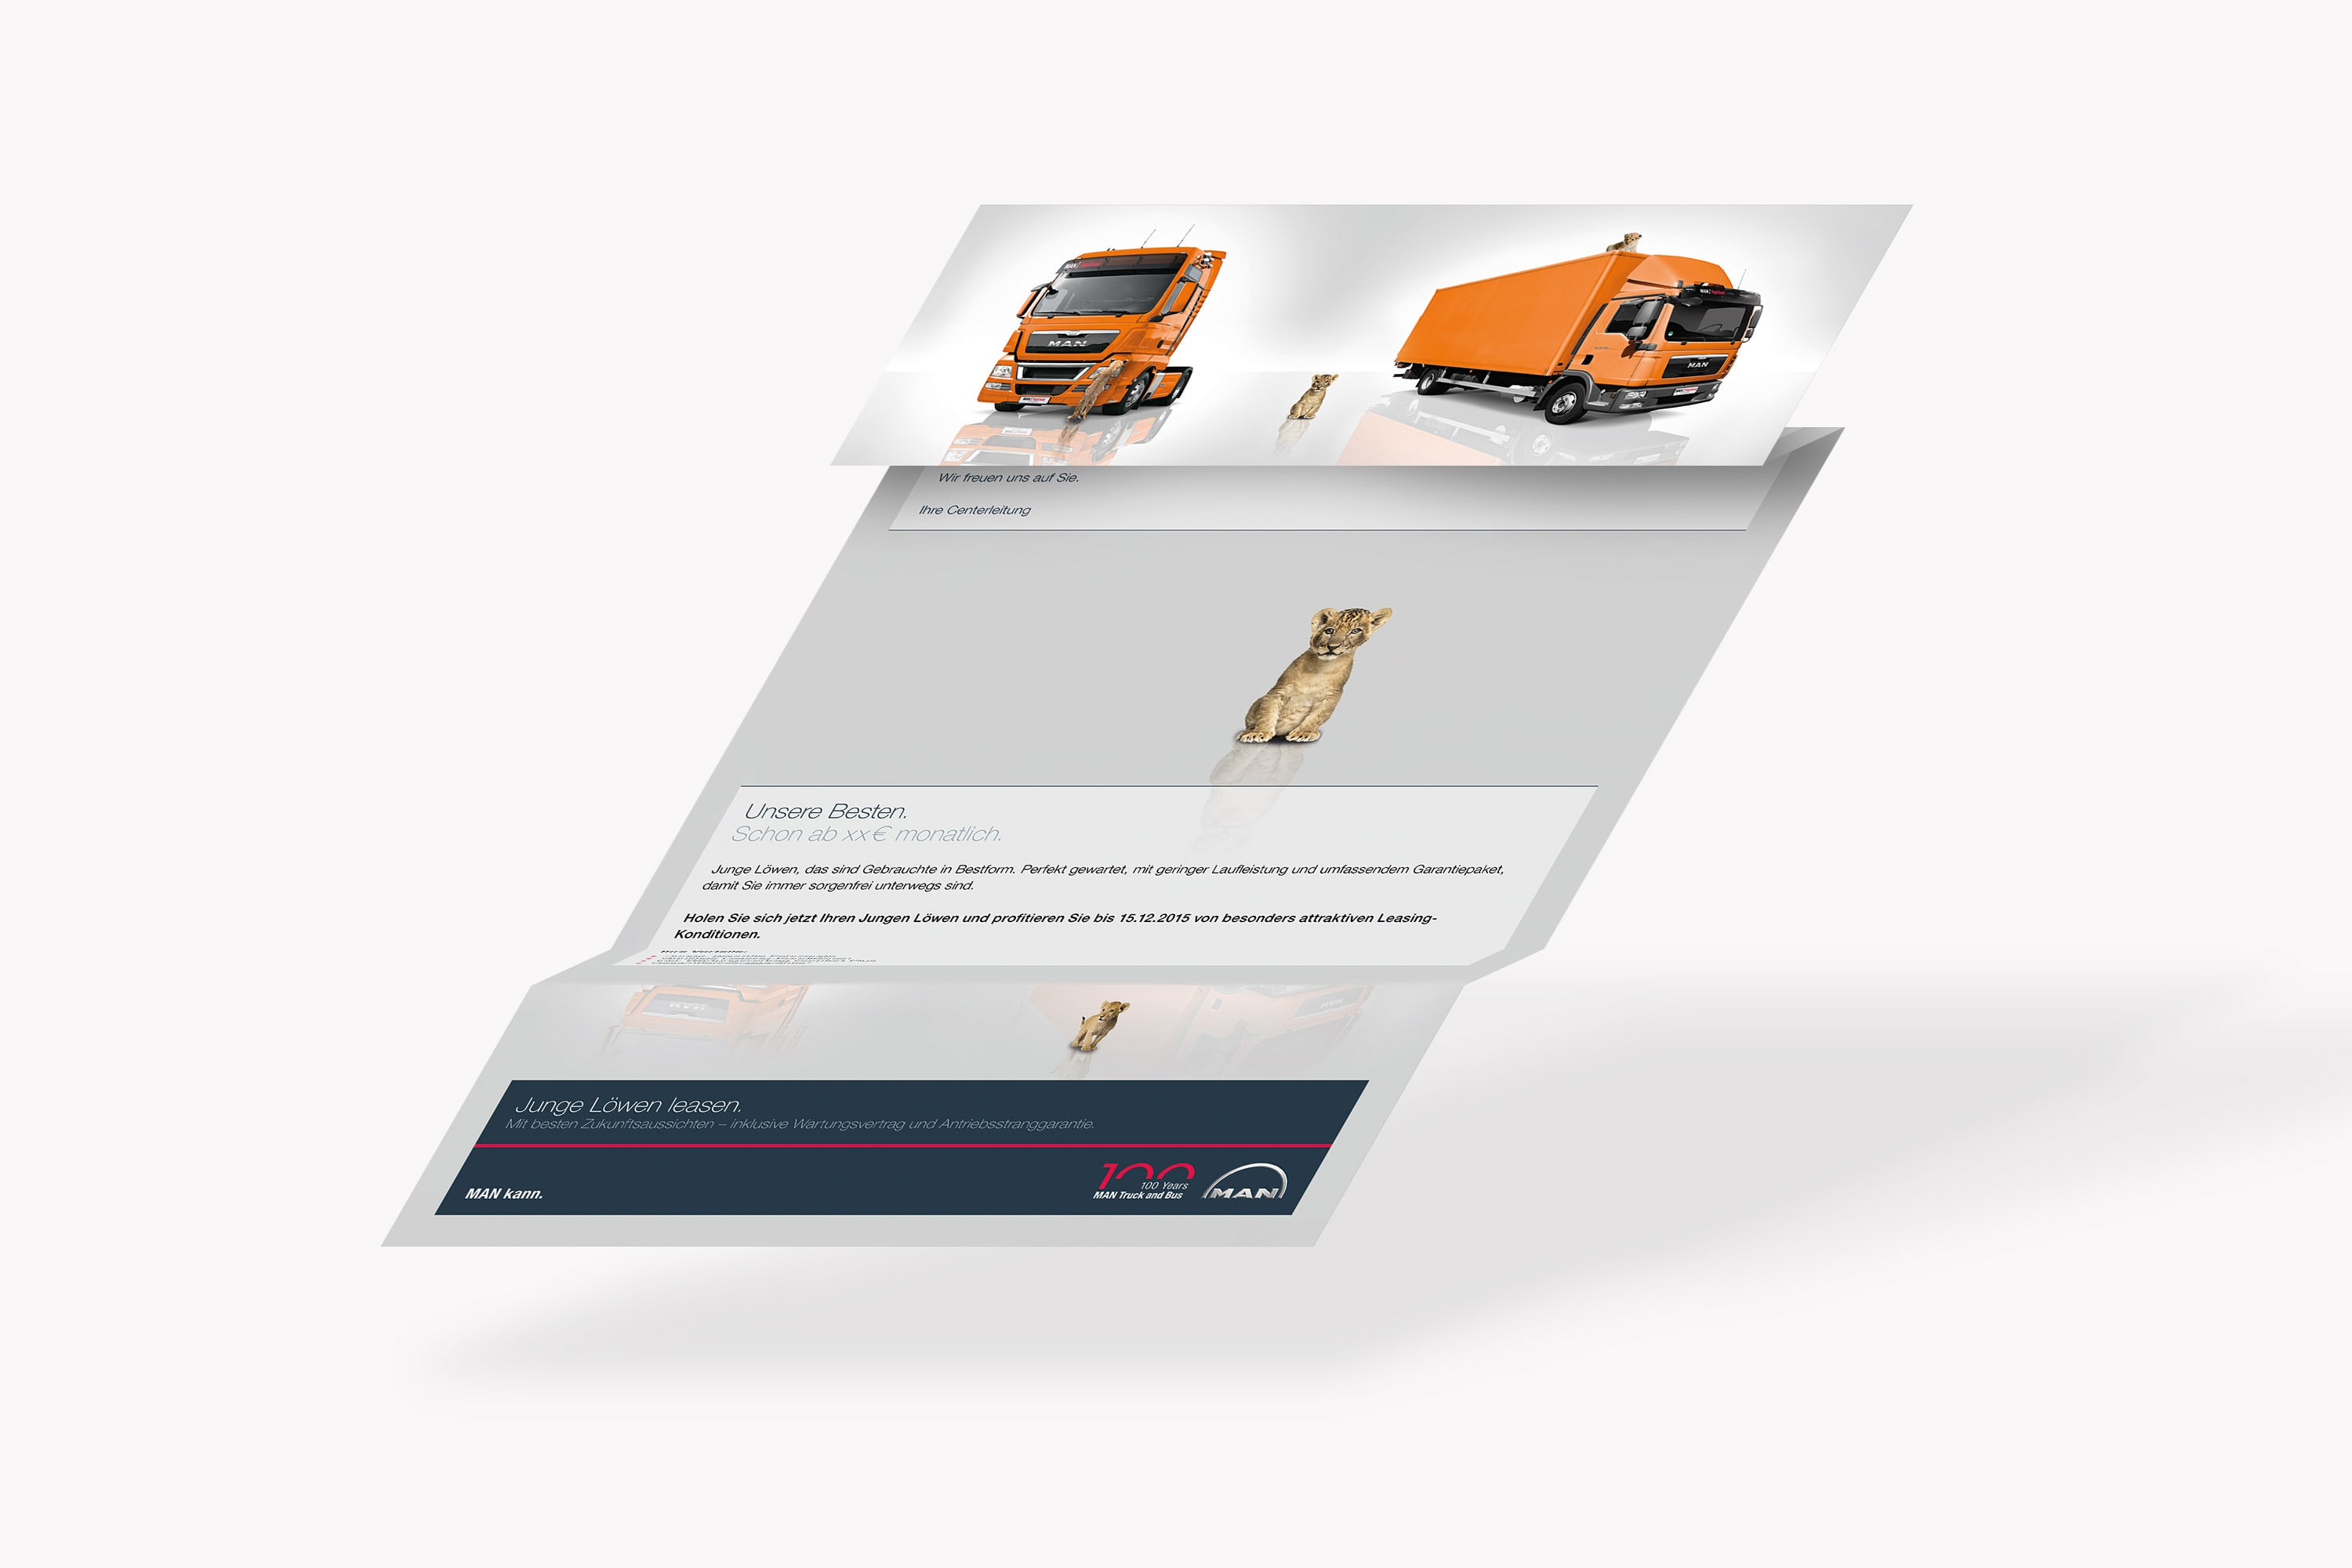 maxfath-man-truck-and-bus-top-used-corporate-design-kampagne-leasing-aktion